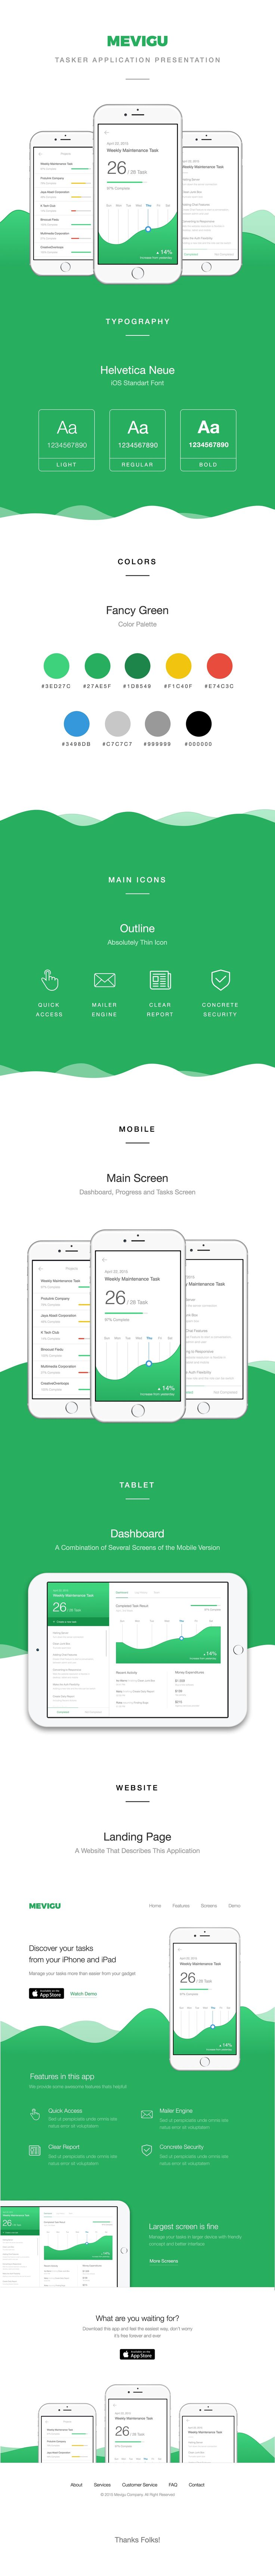 Mevigu - Task Management Application on Behance